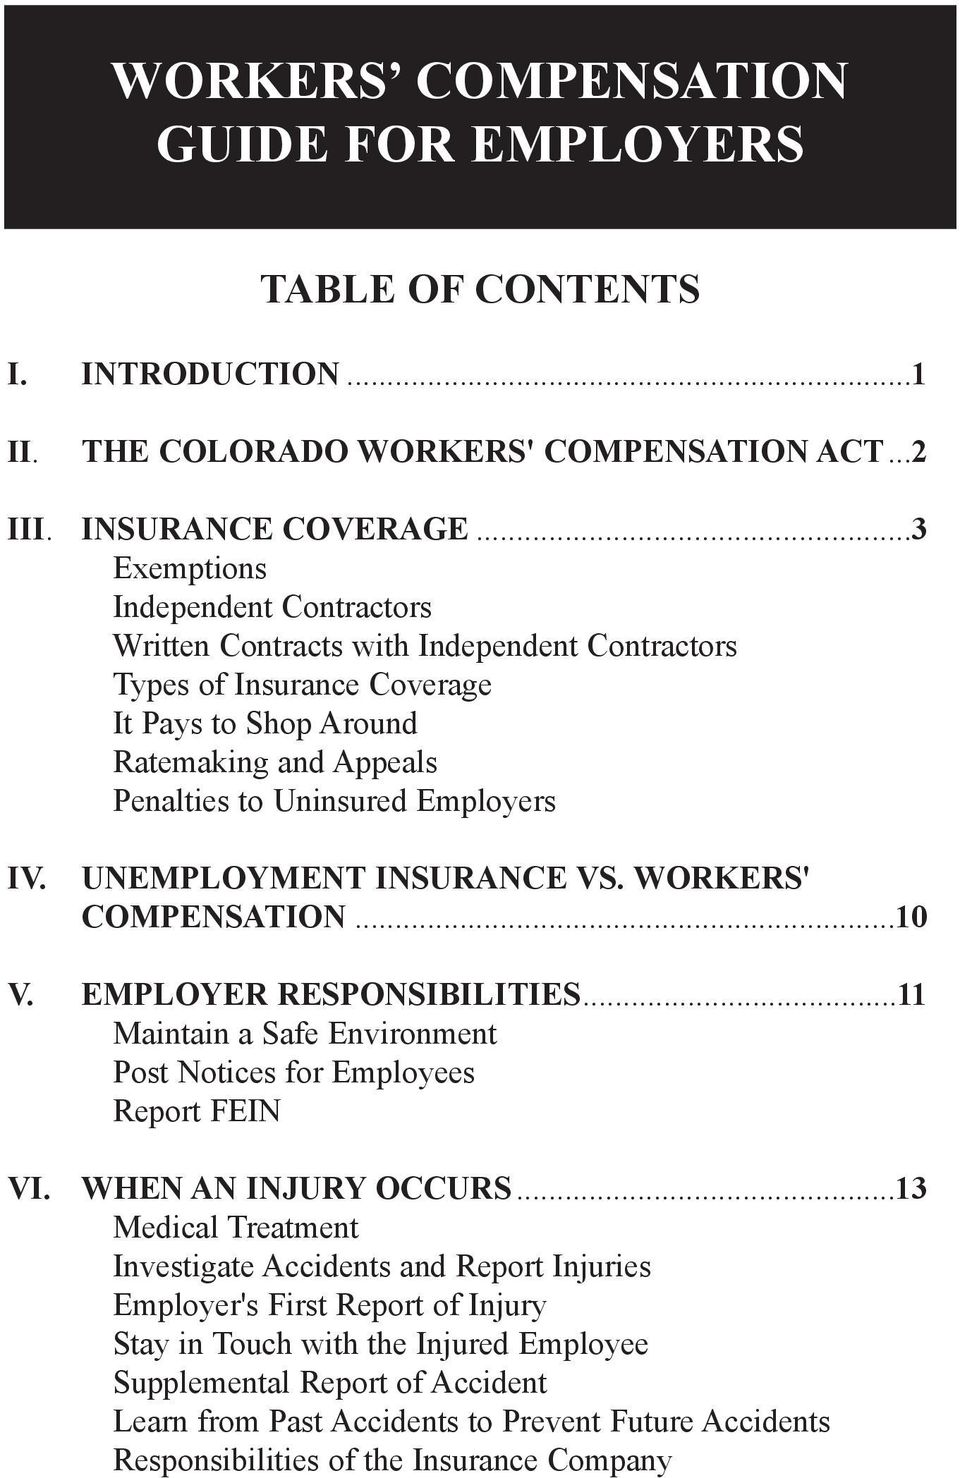 UNEMPLOYMENT INSURANCE VS. WORKERS' COMPENSATION...10 V. EMPLOYER RESPONSIBILITIES...11 Maintain a Safe Environment Post Notices for Employees Report FEIN VI. WHEN AN INJURY OCCURS.